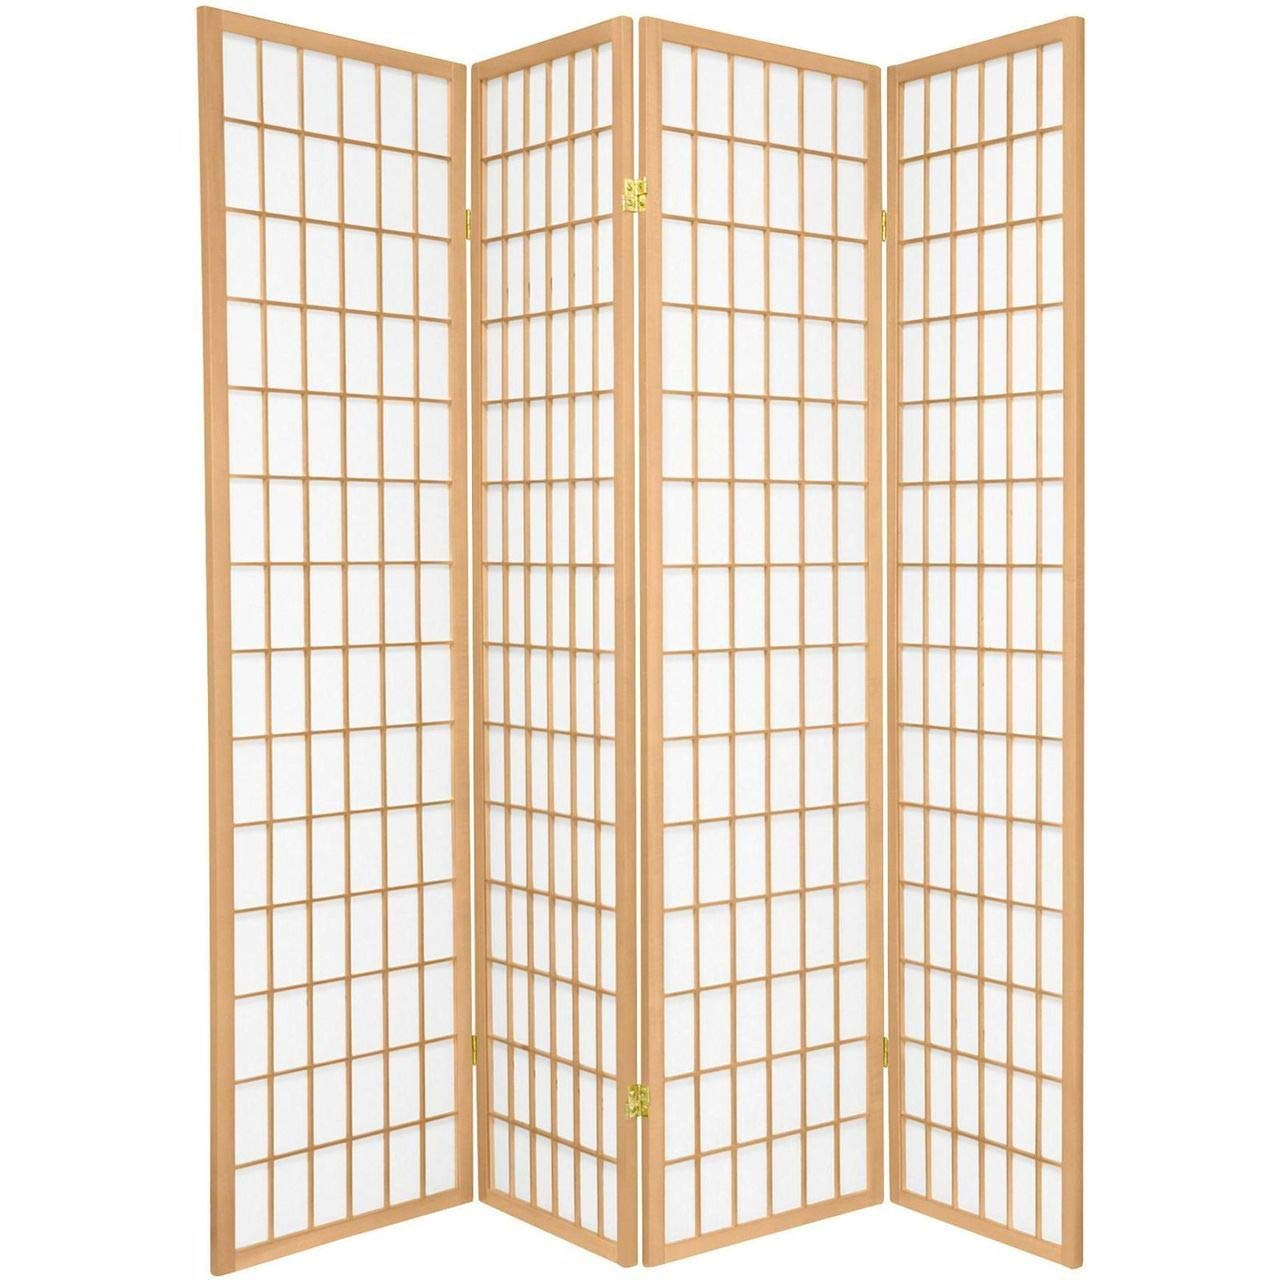 Legacy Decor 4-panel Room Screen Divider by Legacy Decor